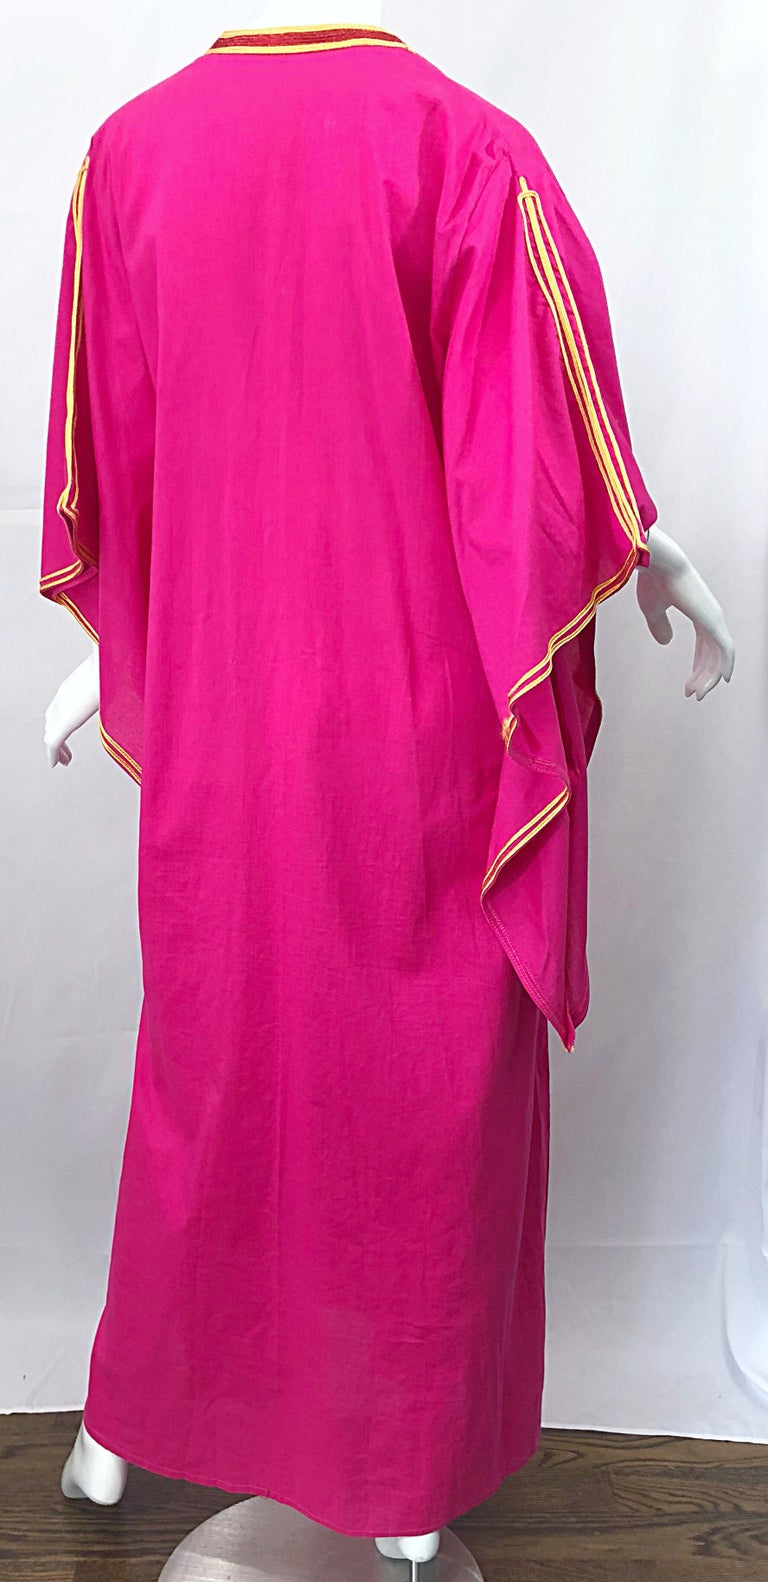 Amazing 1970s Hot Pink + Yellow Angel Sleeve Vintage 70s Kaftan Maxi Dress For Sale 5